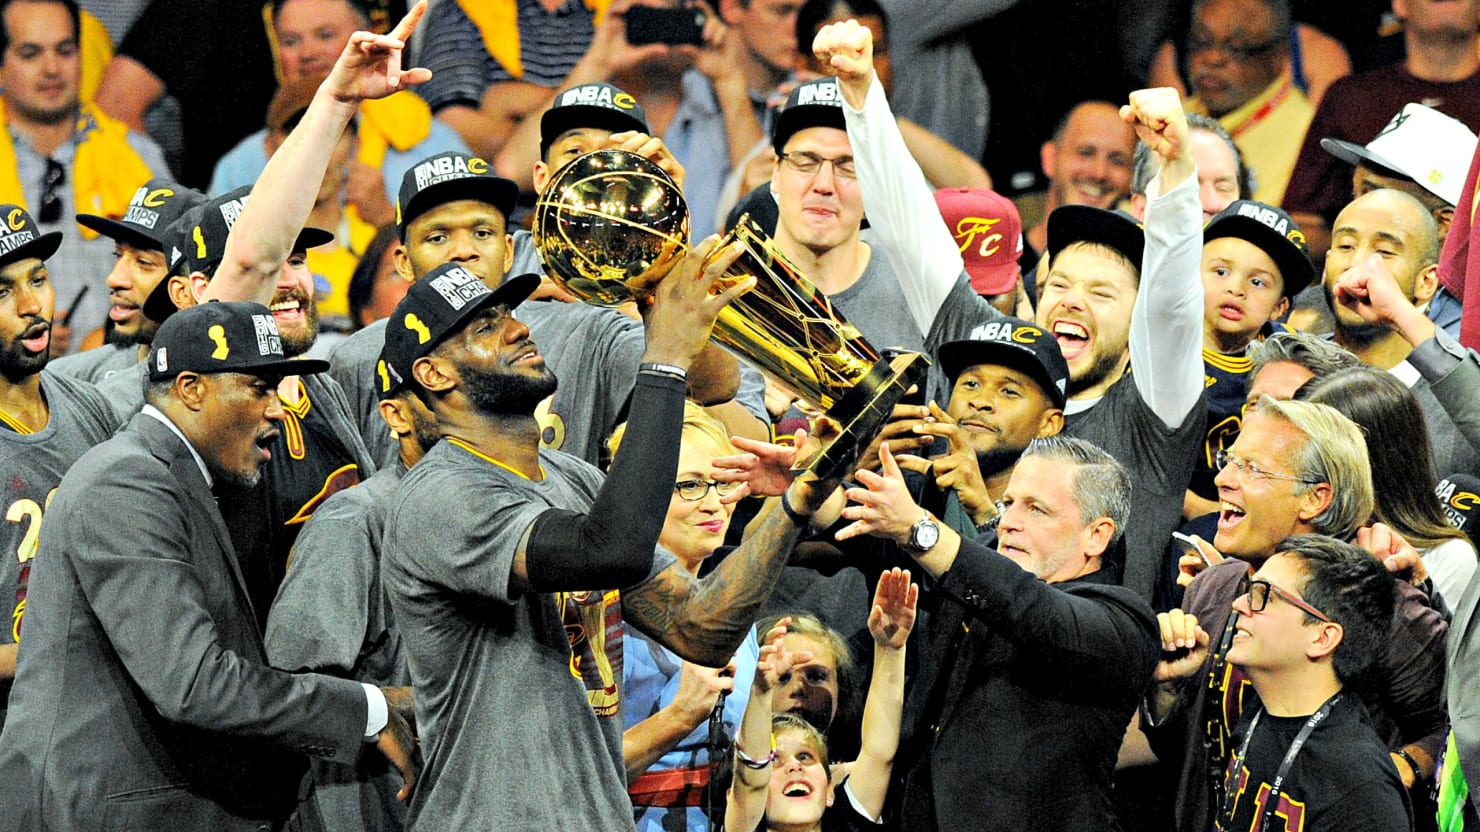 Cleveland Cavs Victory Parade: How to Watch the Live Stream Online